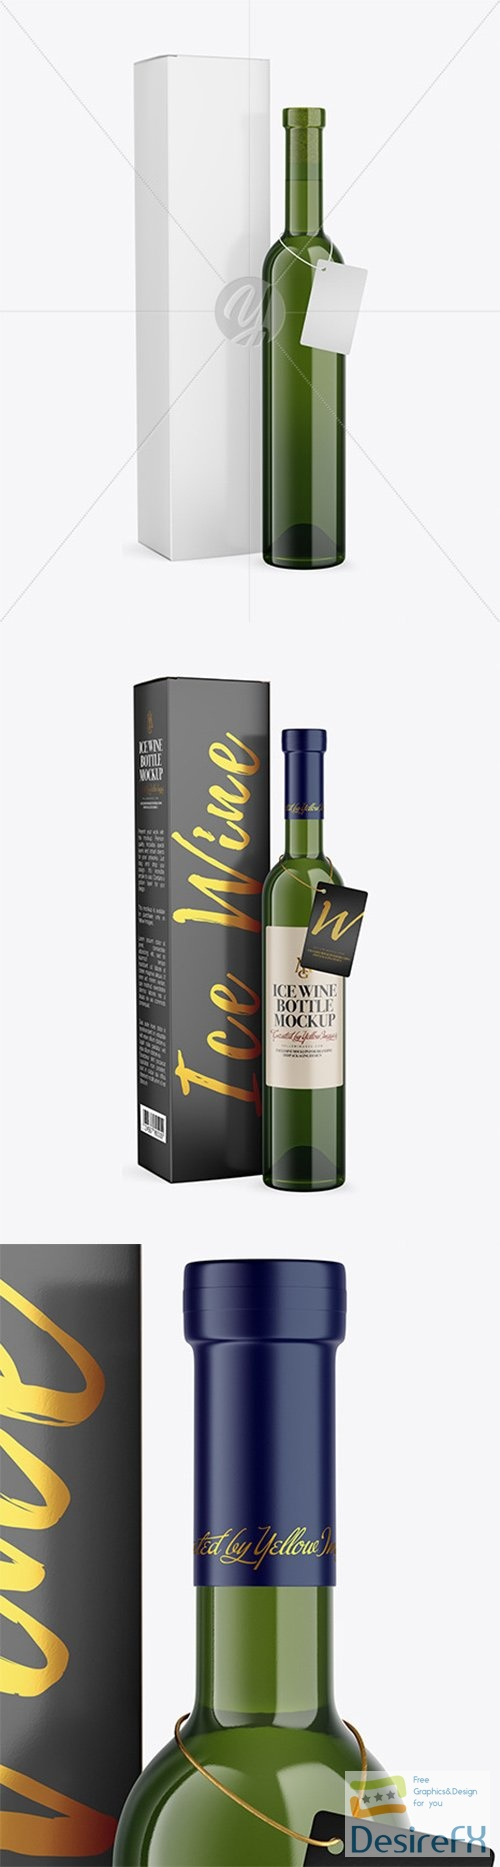 Green Glass White Wine Bottle With Box Mockup 79254 TIF